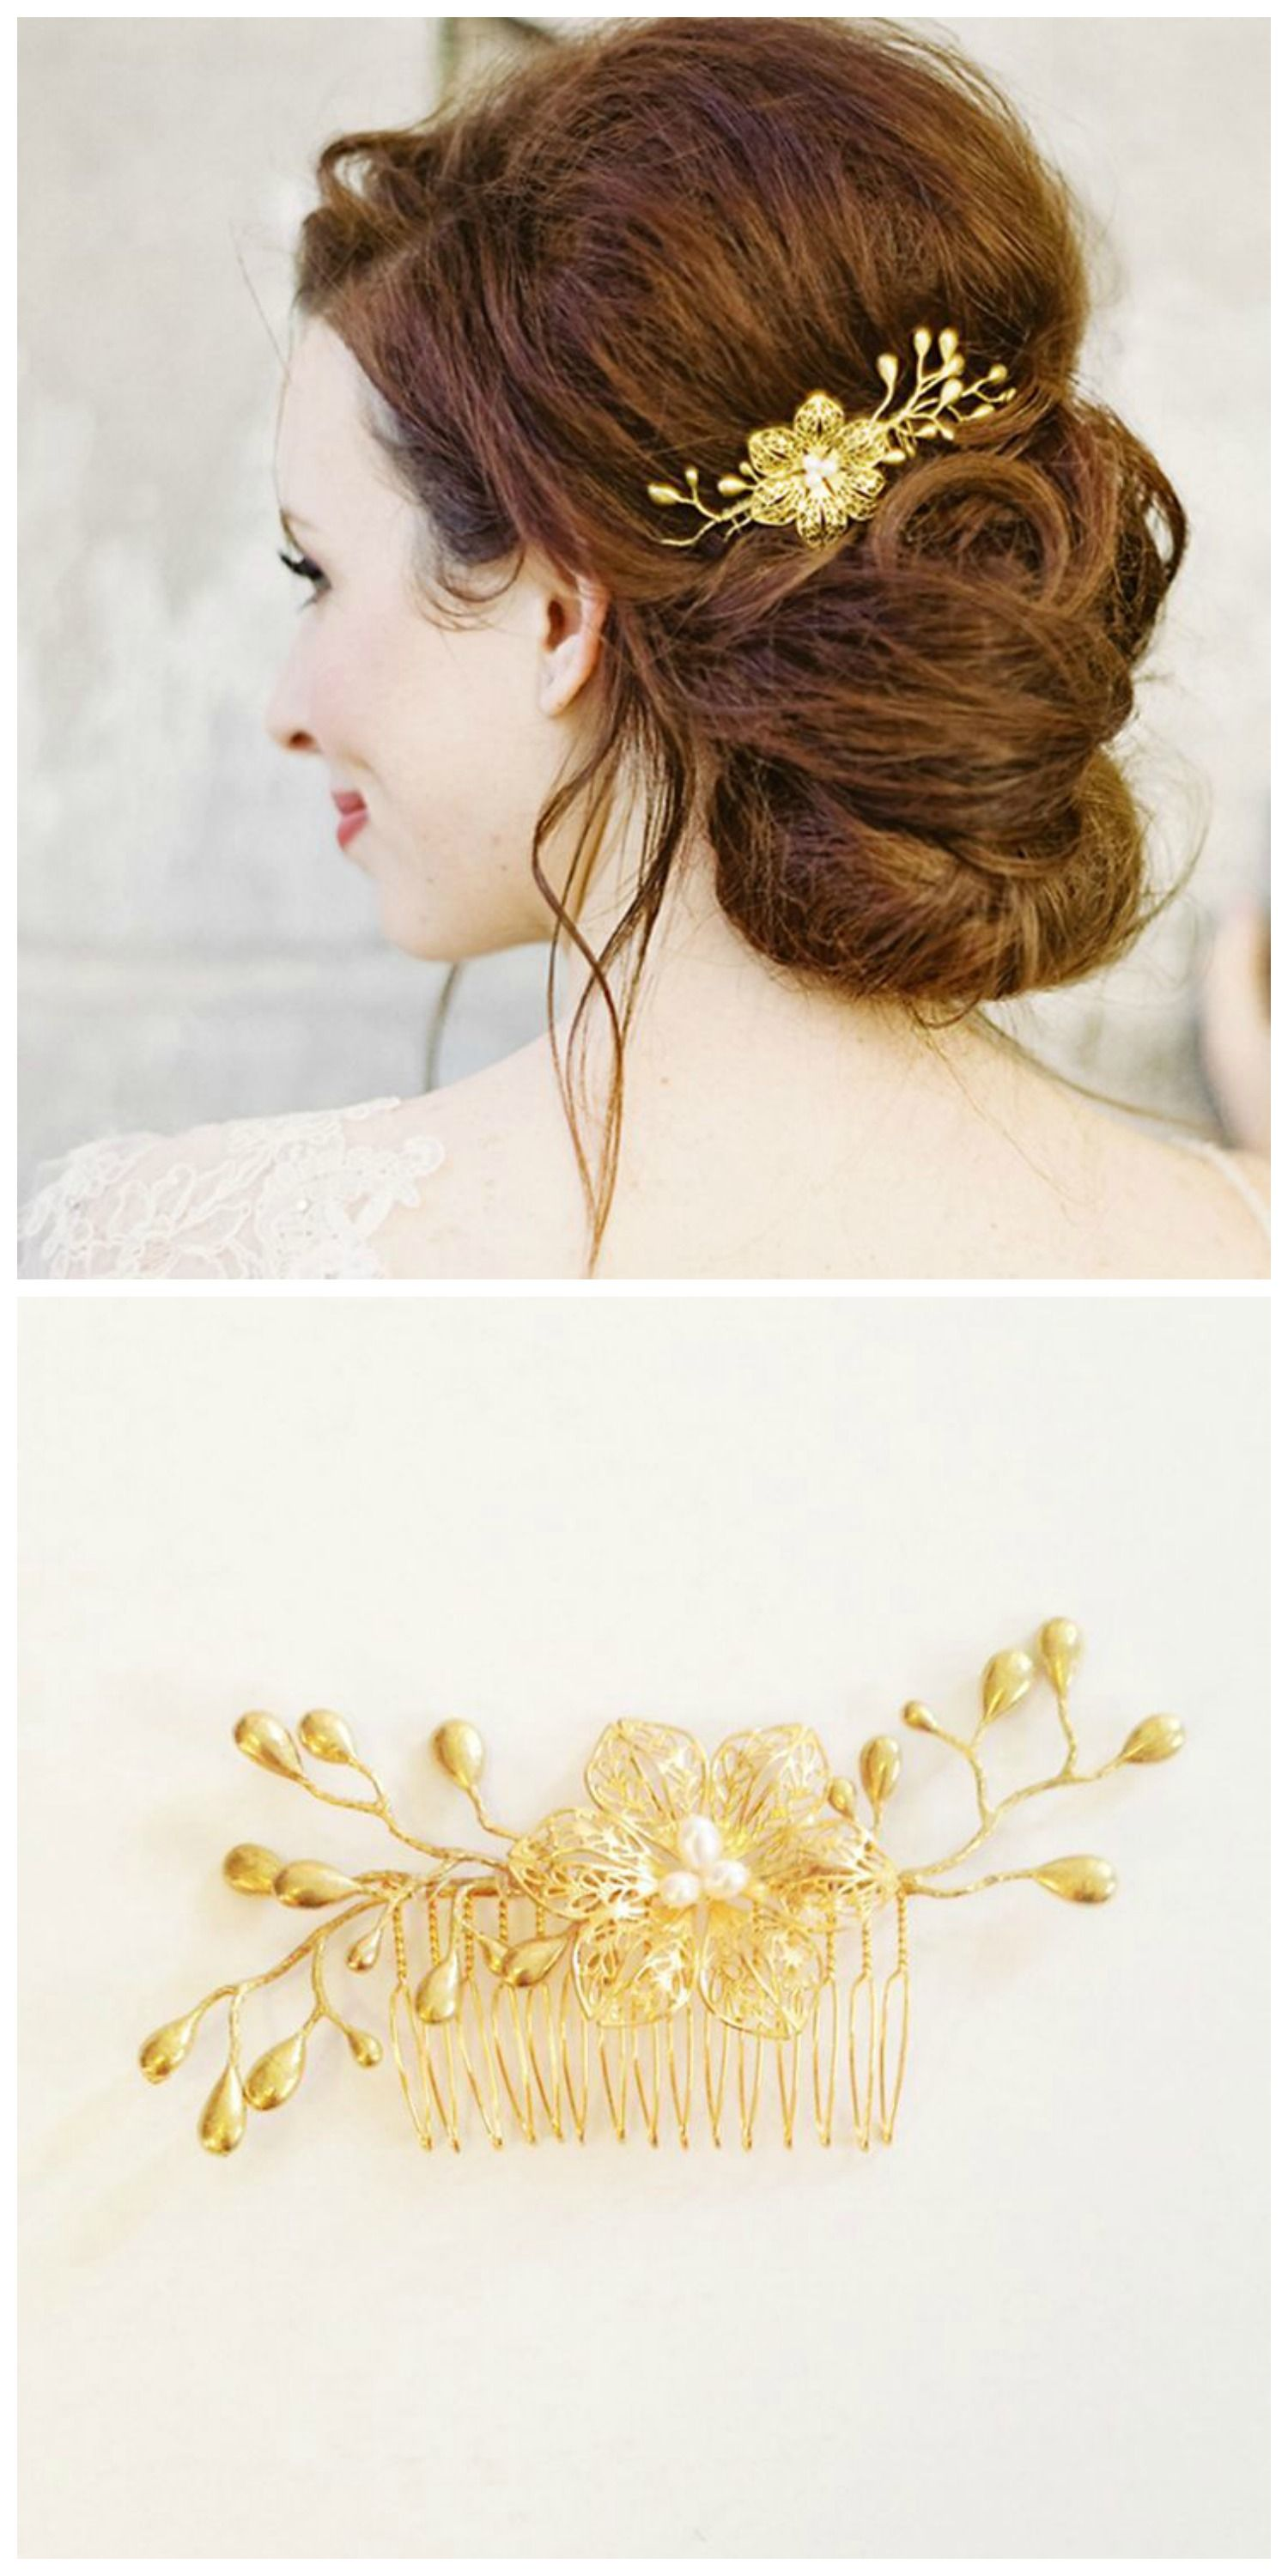 Molly Floral Hair Comb | Floral hair, Hair combs and Floral